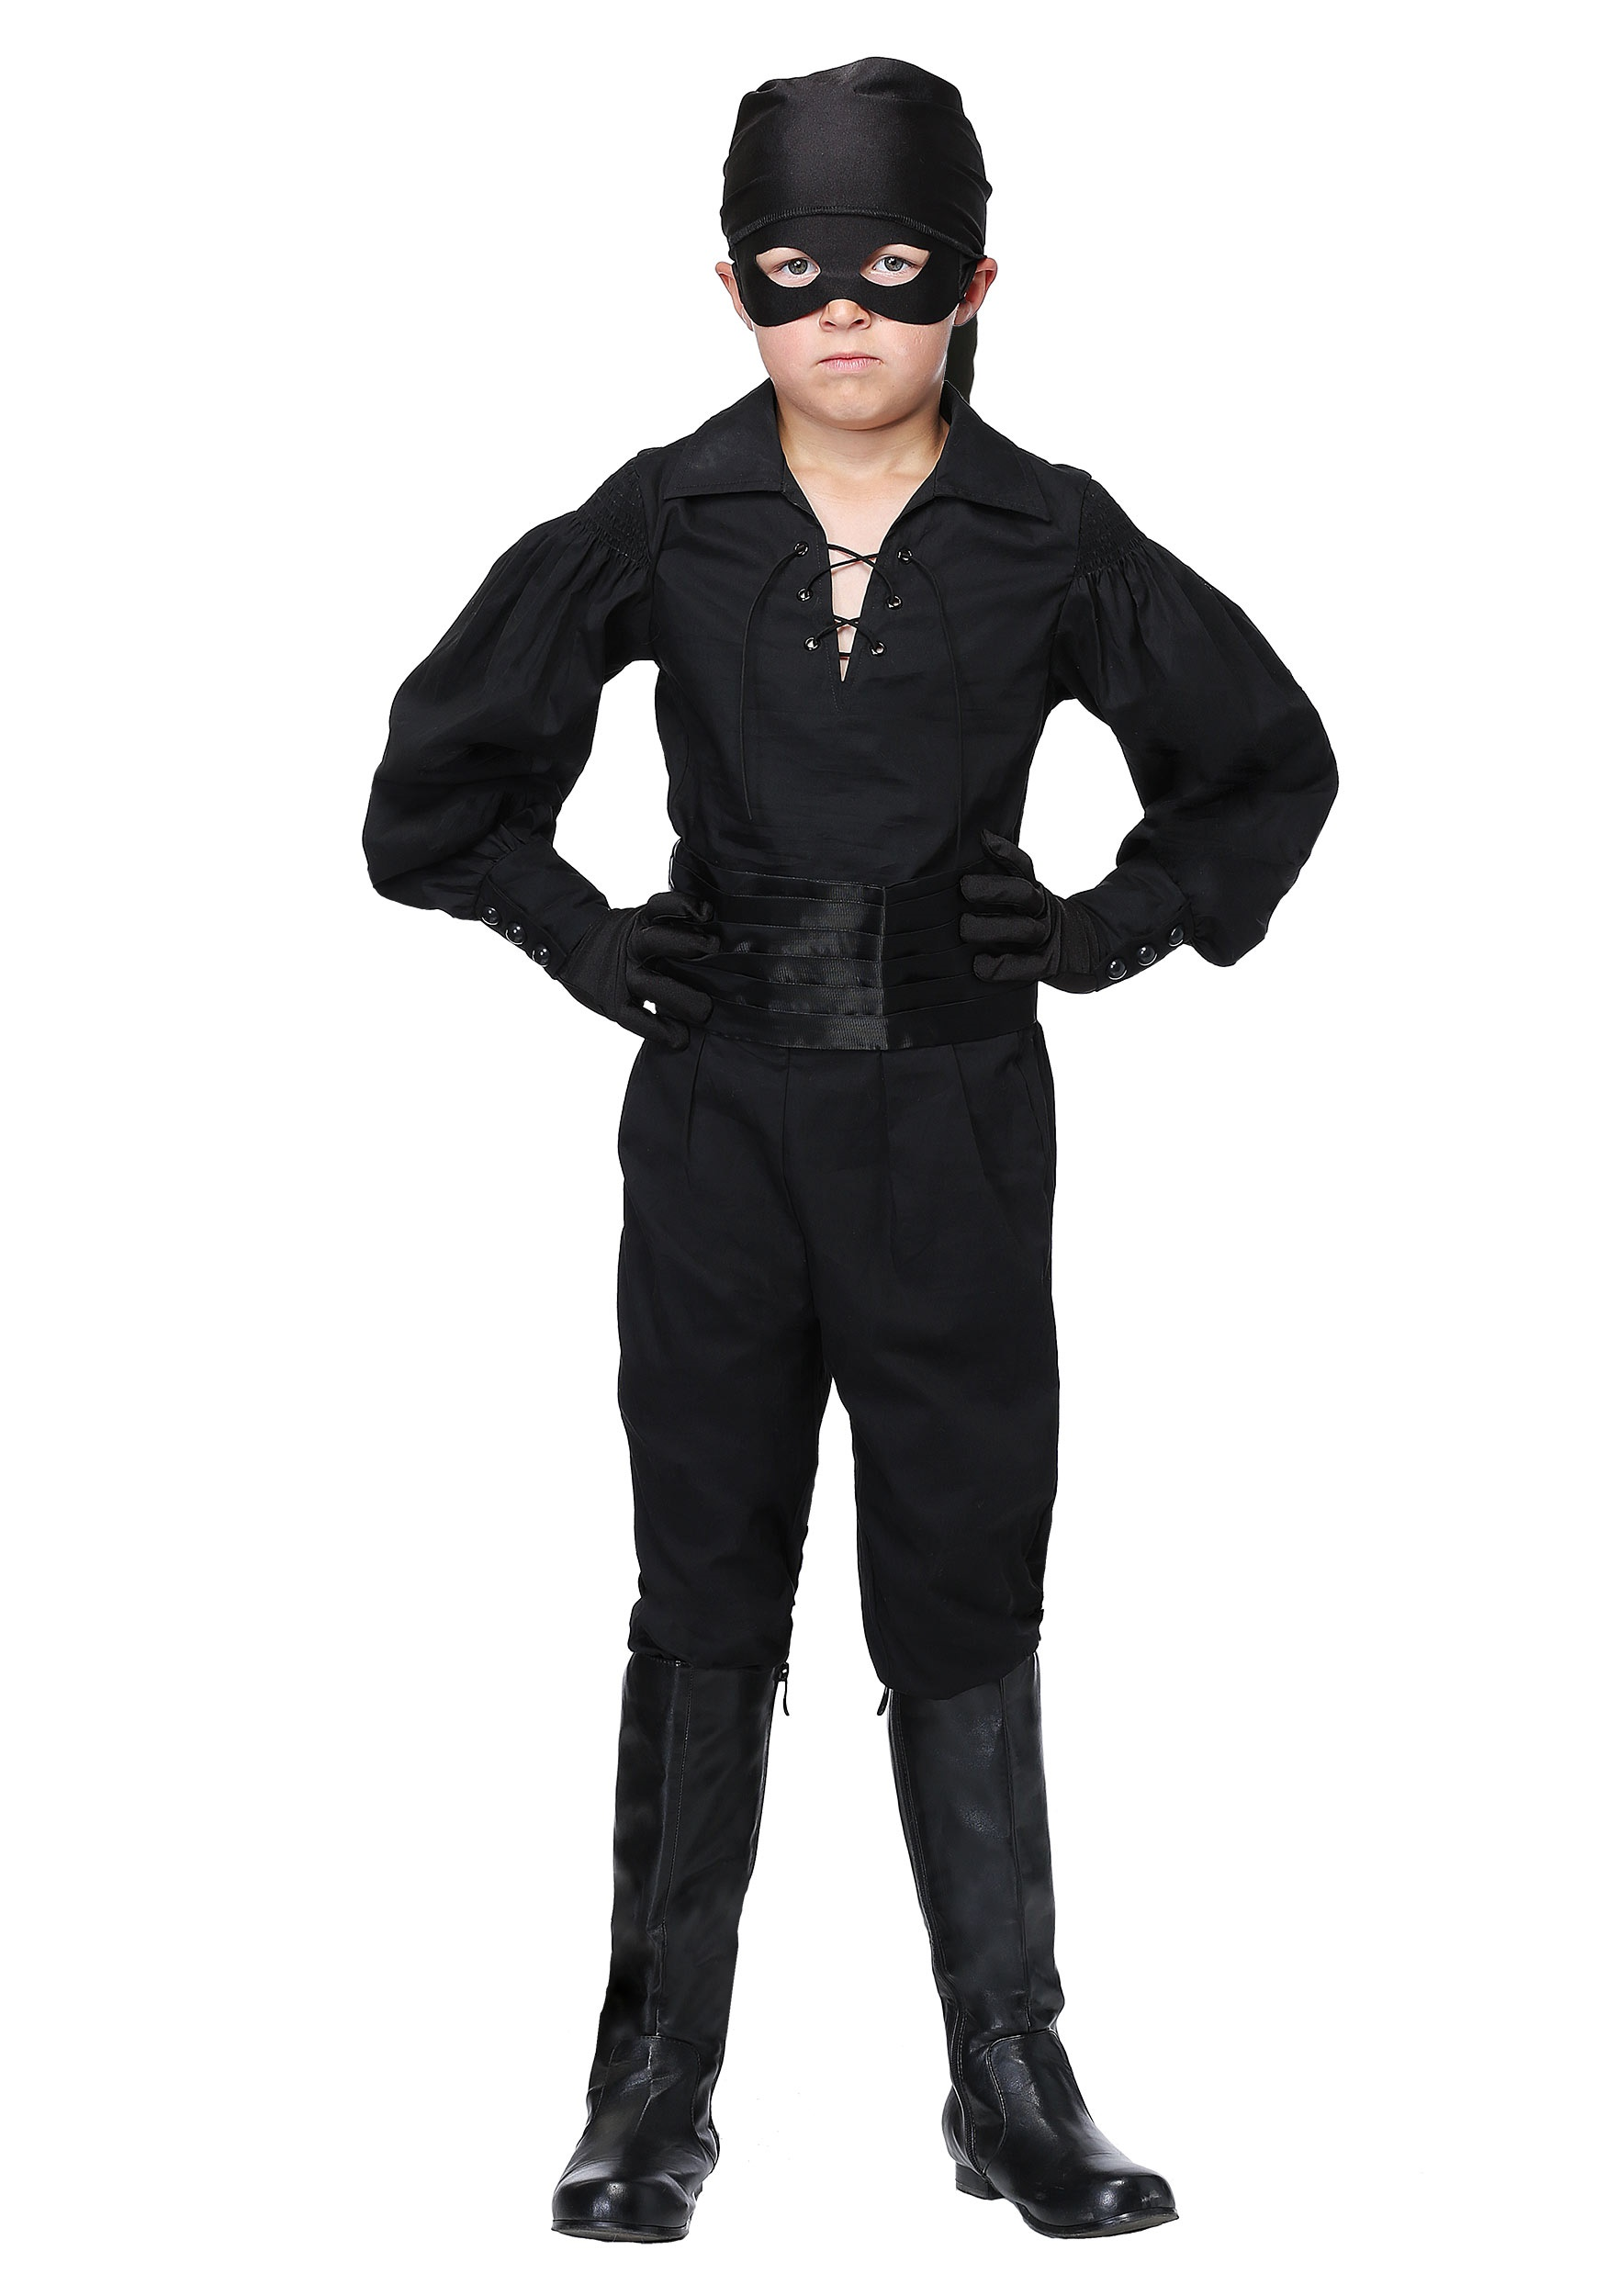 Princess Bride Westley Boys Costume Princess Bride Westley Boys Costume ...  sc 1 st  Halloween Costumes & Princess Bride Westley Costume for Boys